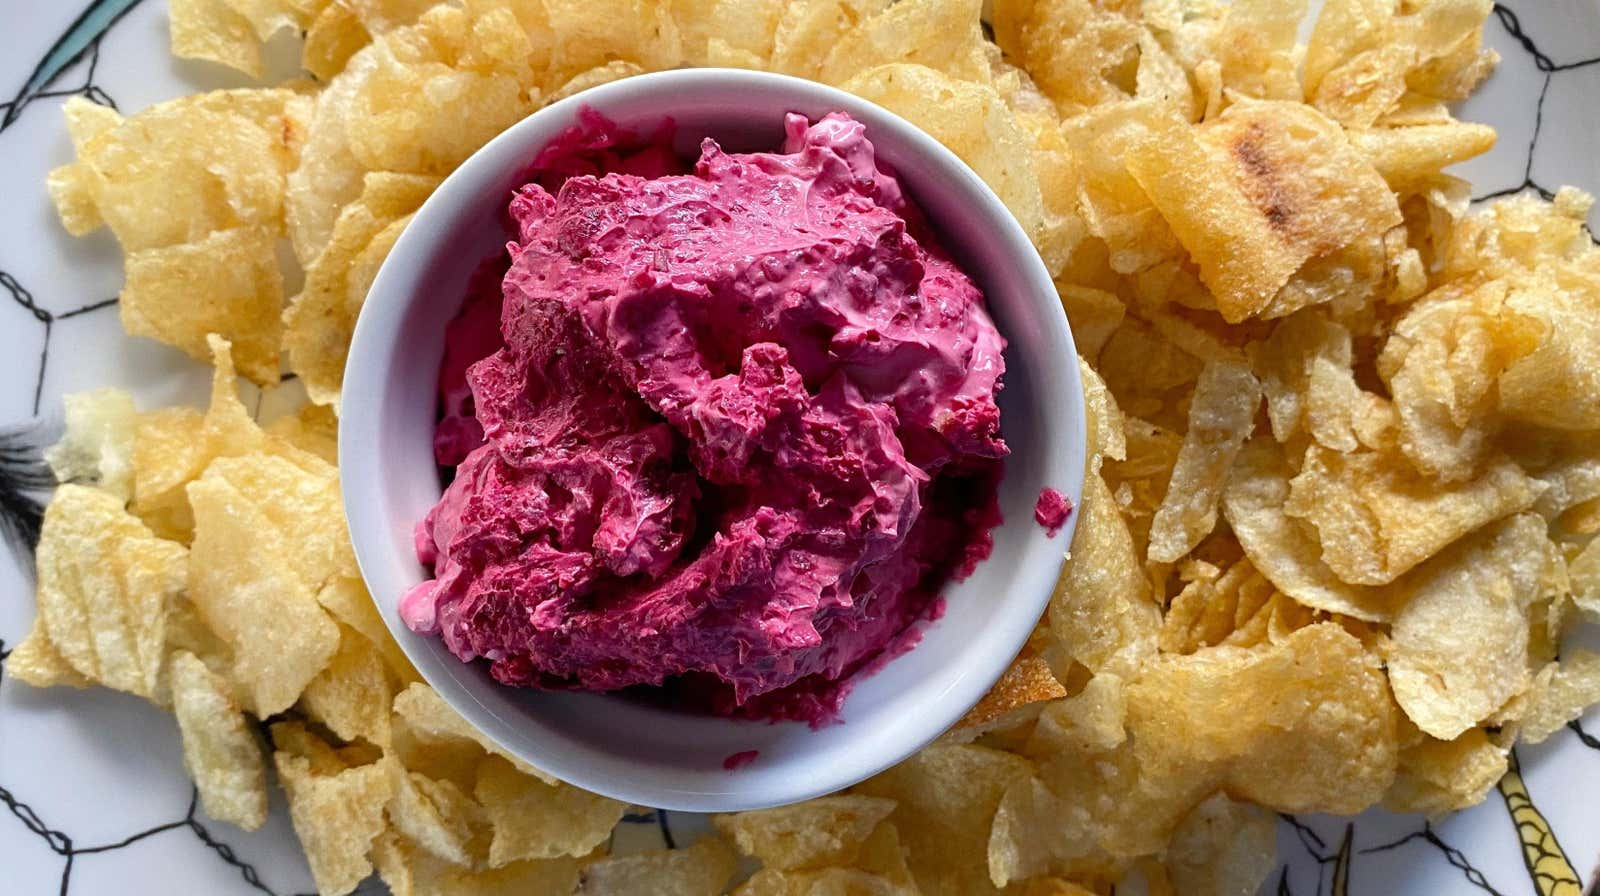 Make This 3-Ingredient Dip With Charred Beets